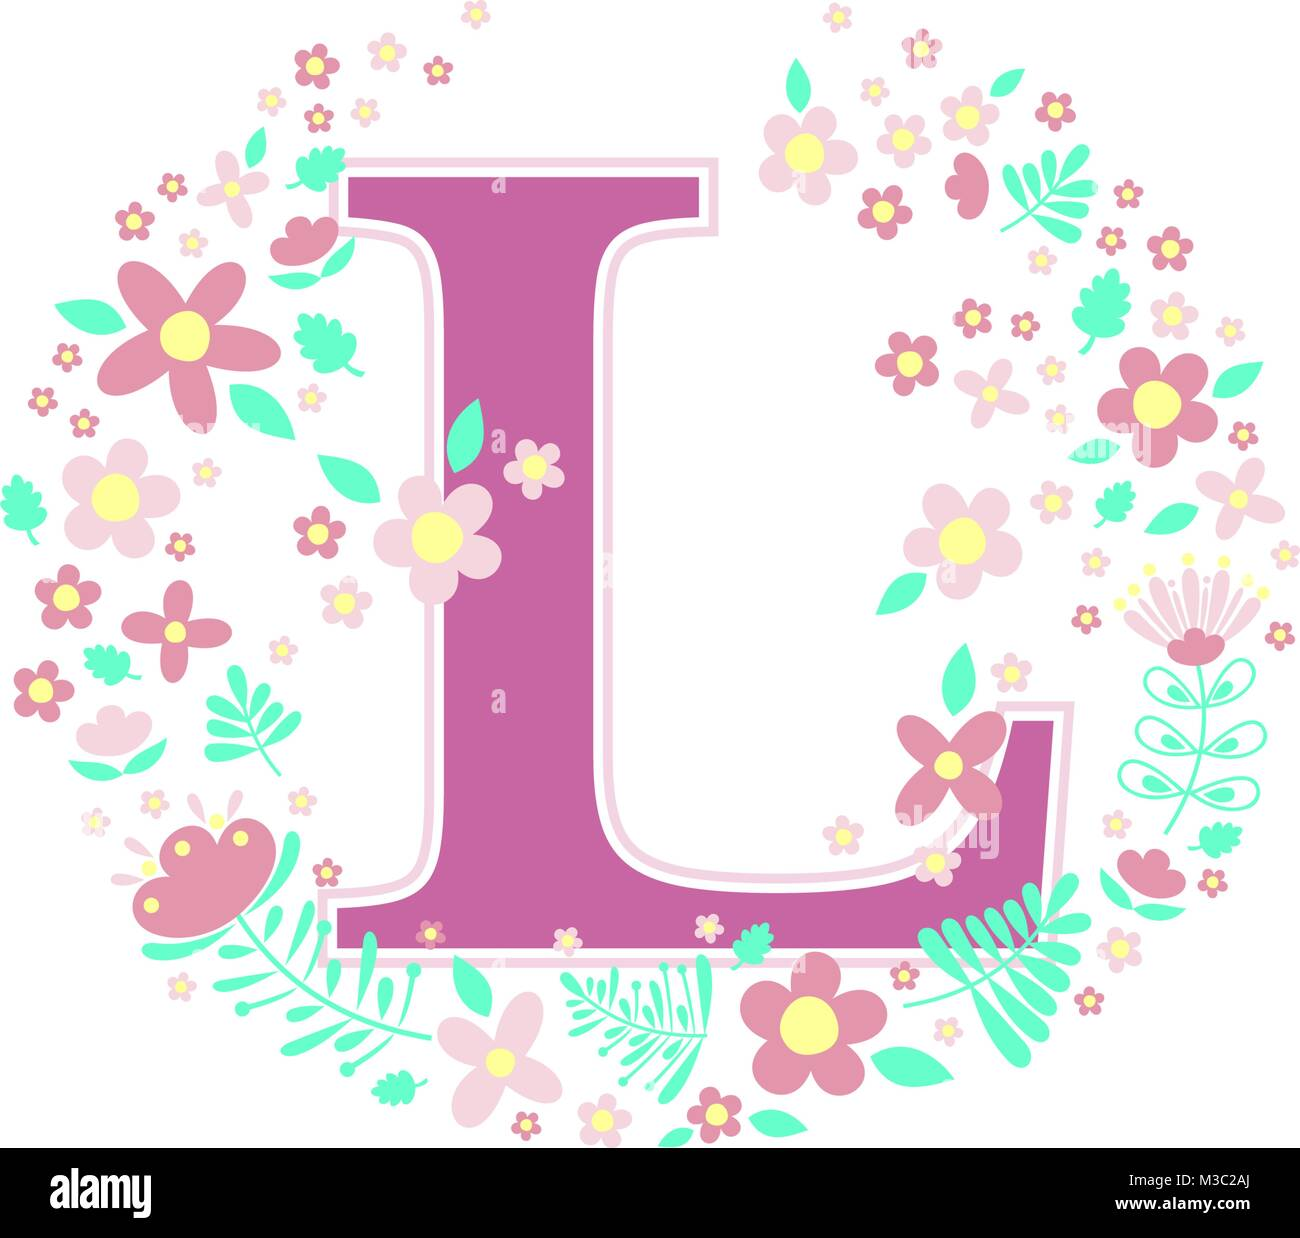 Letter L Stock Vector Images - Alamy